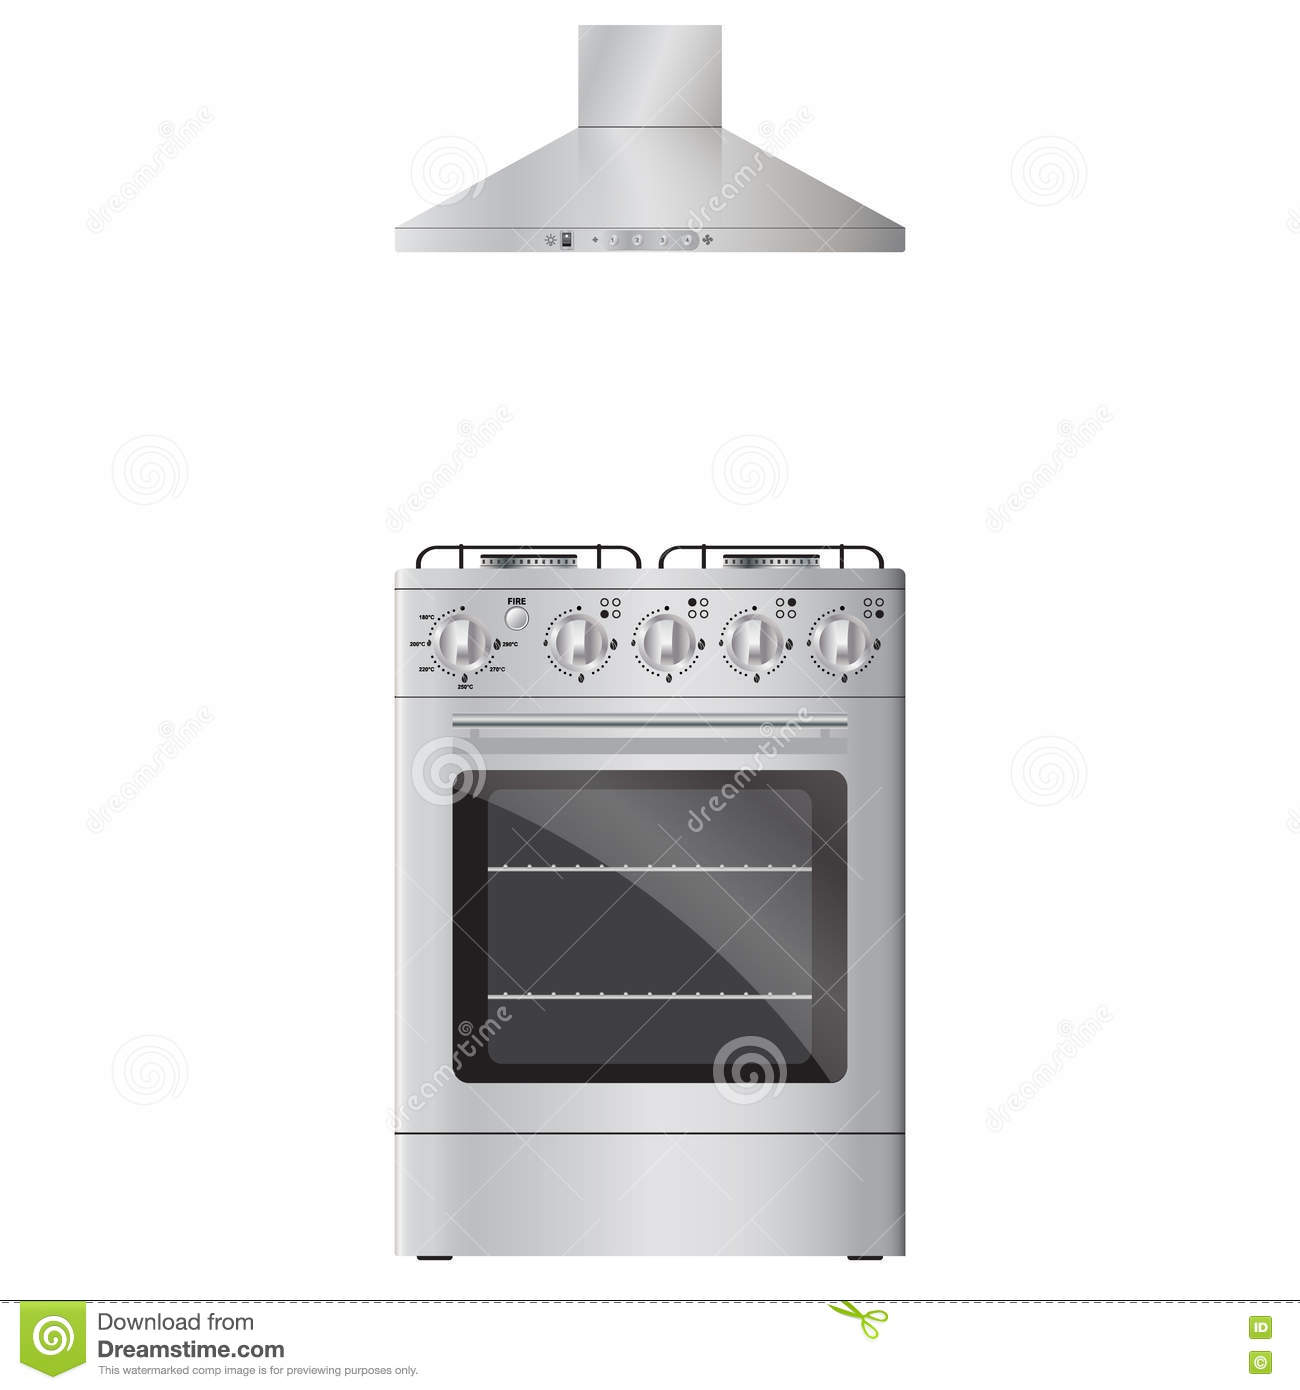 Oven Stove Icon Image Vector Illustration